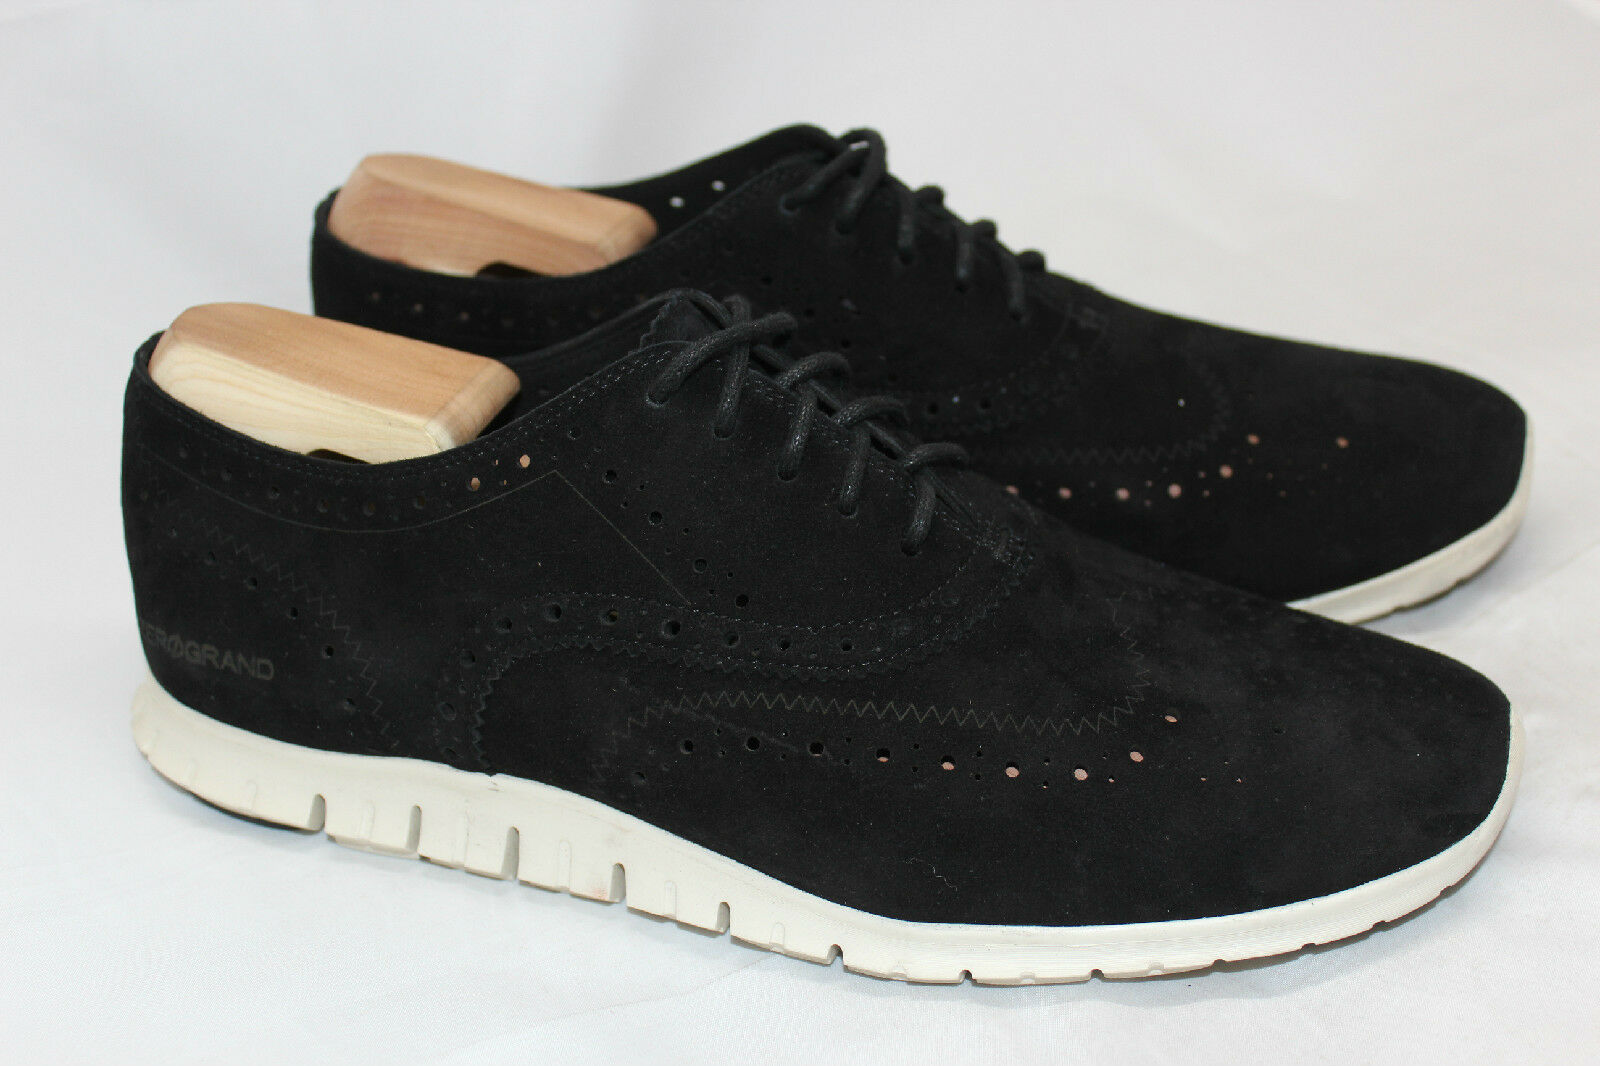 Womens Cole Haan ZeroGrand Wing Oxford - Black Suede - Size 11 B - D44060 (R87)